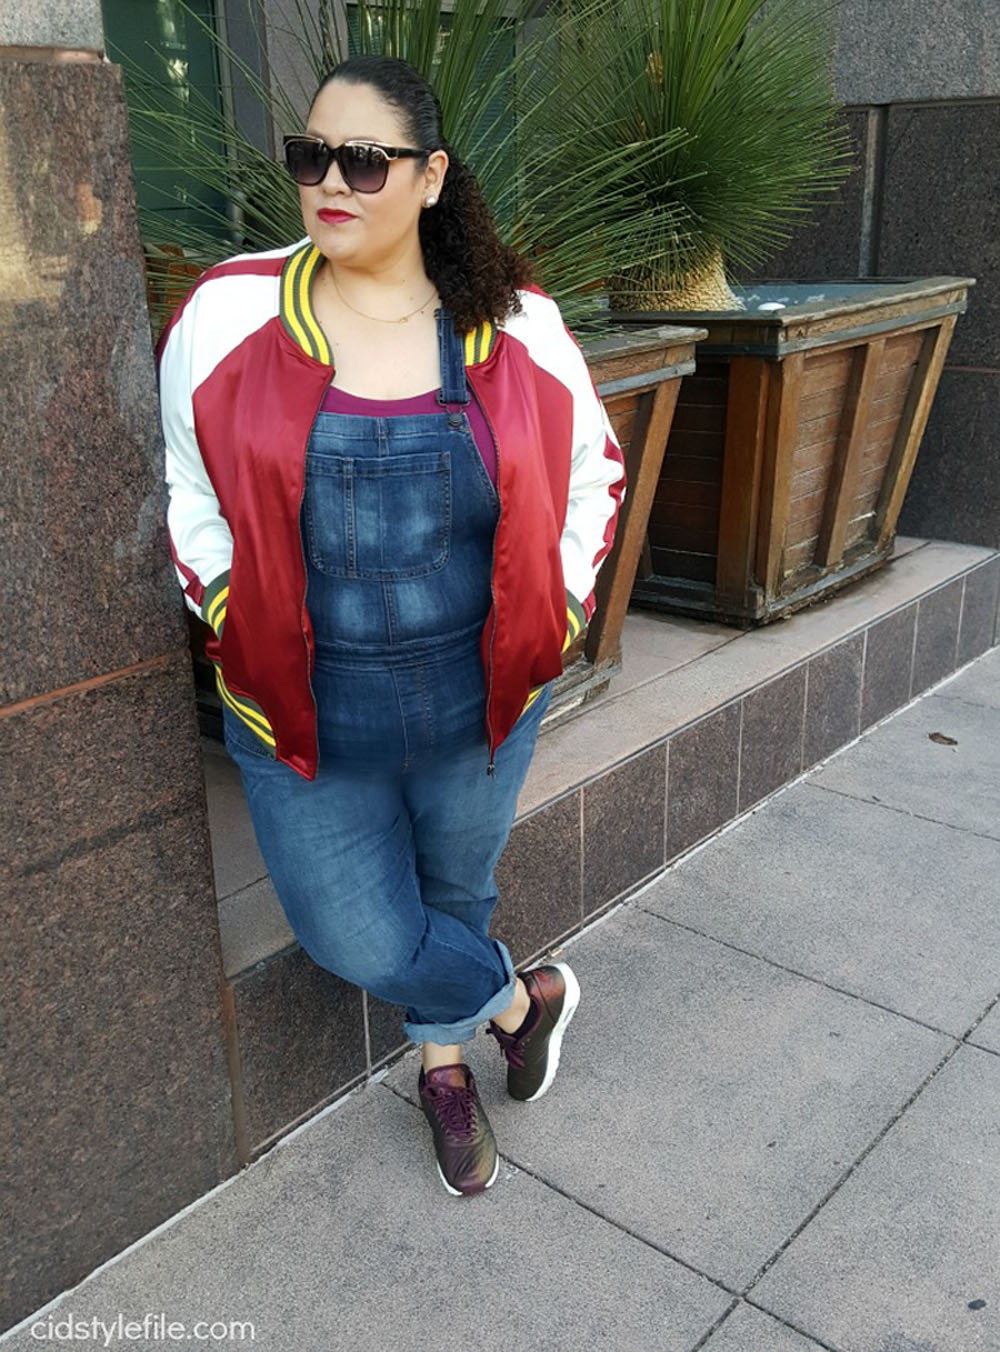 Over 40 fashion blogger Veronica of Cid Style File in a red and white bomber jacket and dungarees/overalls